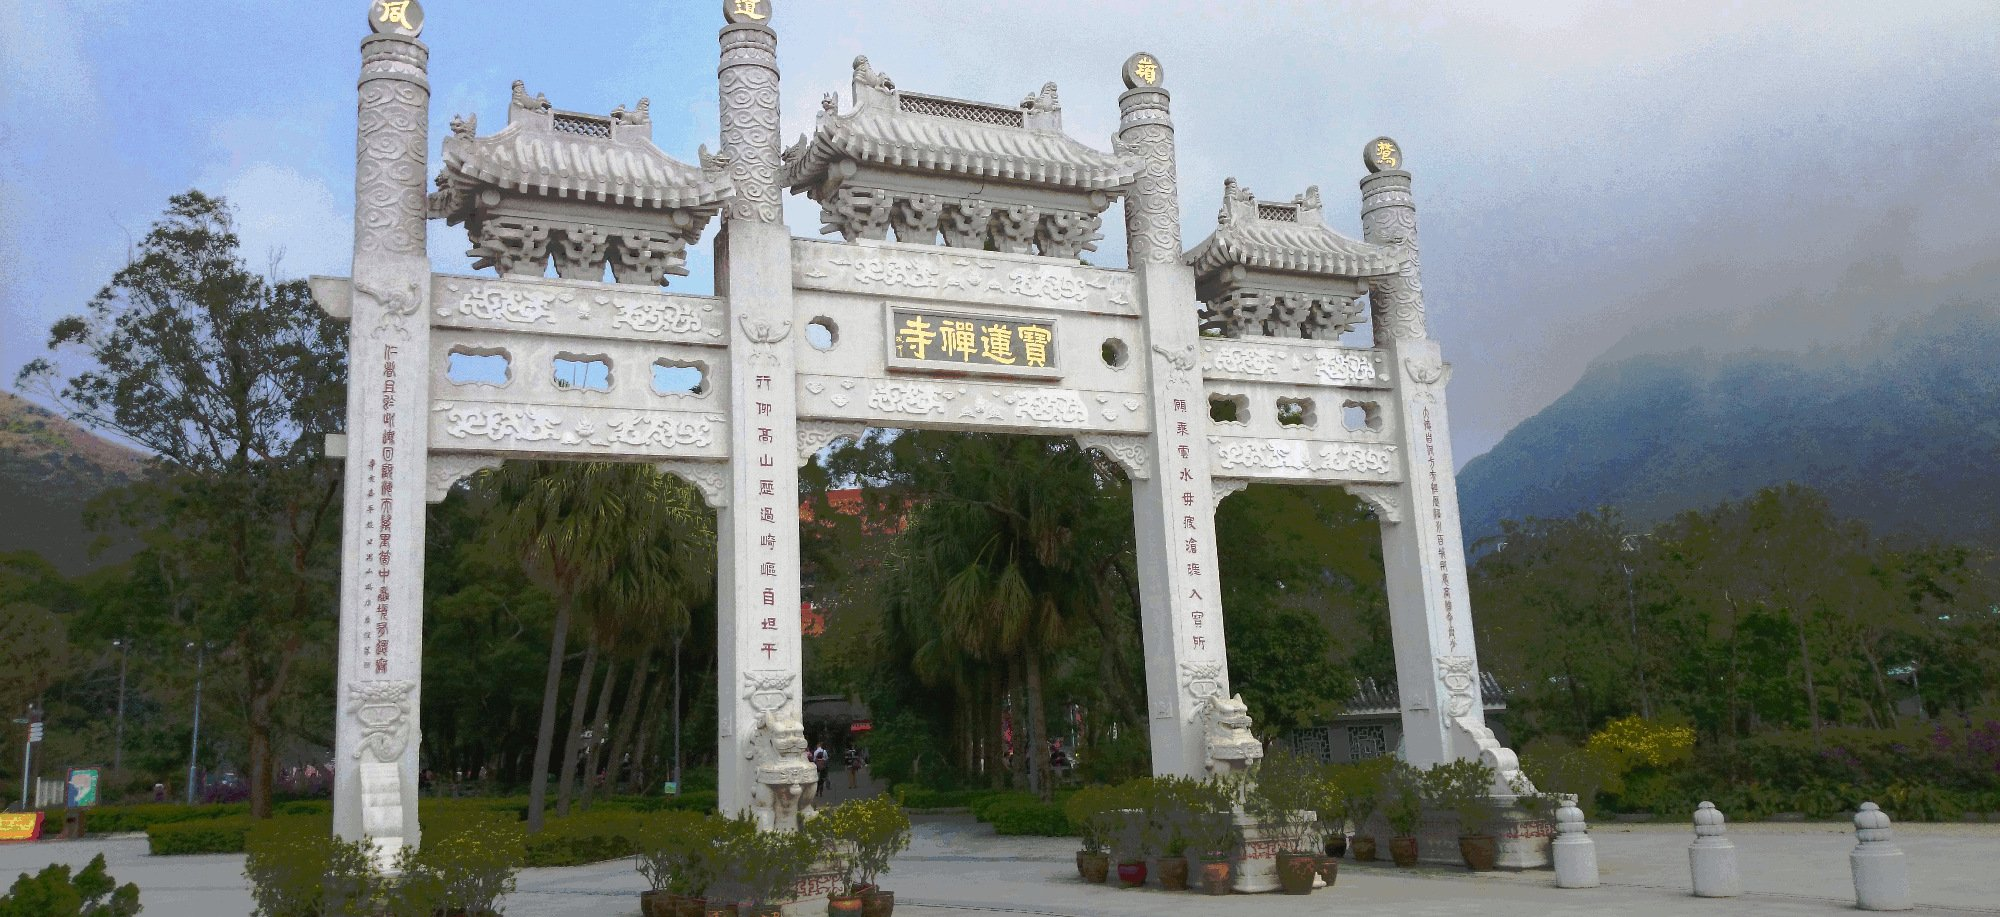 Good Food In Hong Kong - Po Lin Monastery Gateway - Header